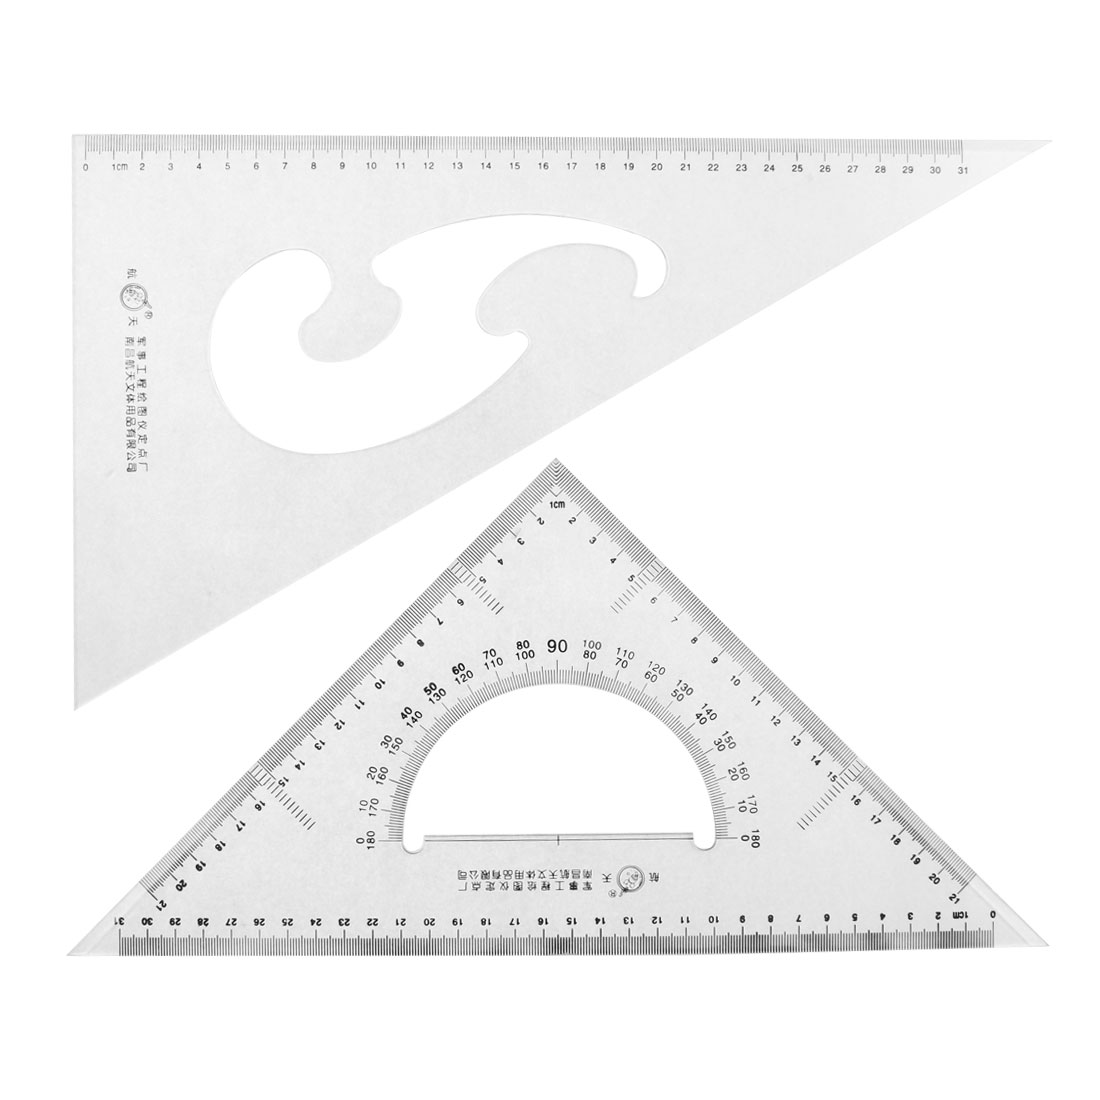 Unique Bargains School Stationery 30 60 45 Degree Triangle Rulers Protractor Measure Set 2... by